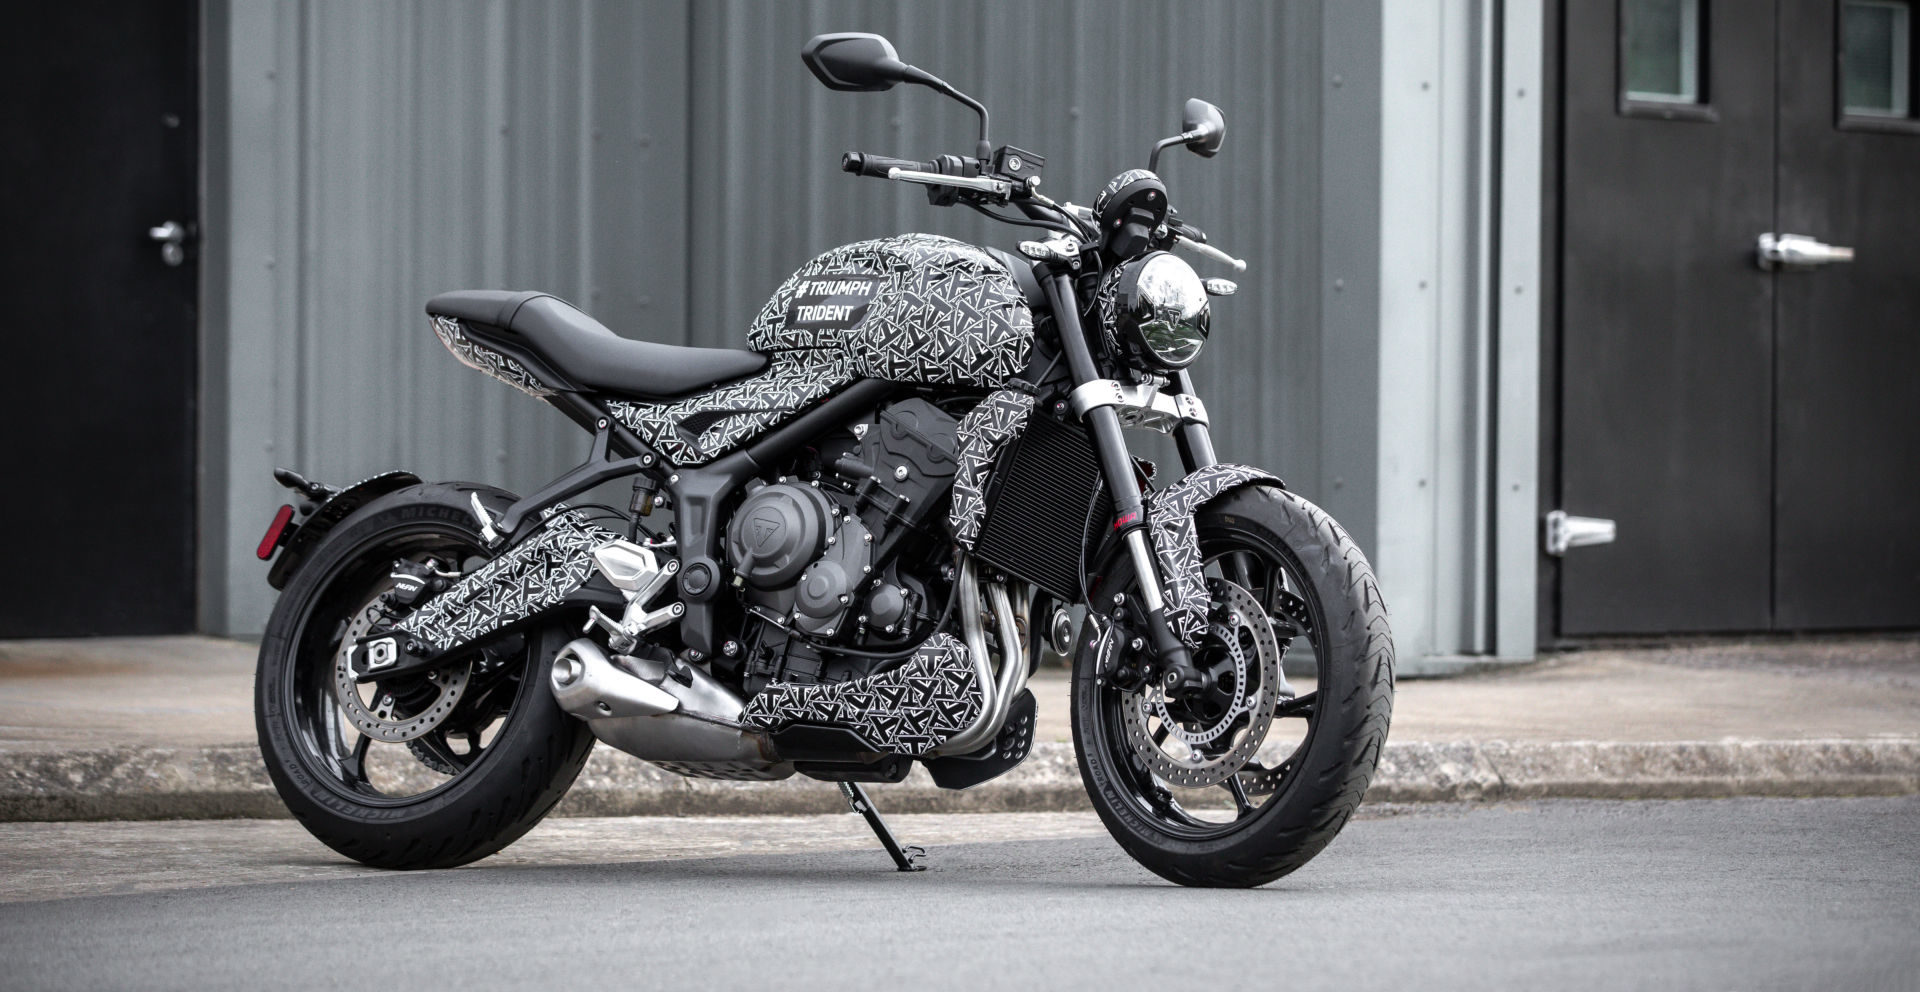 A prototype of the new Triumph Trident middleweight roadster. Photo courtesy Triumph.